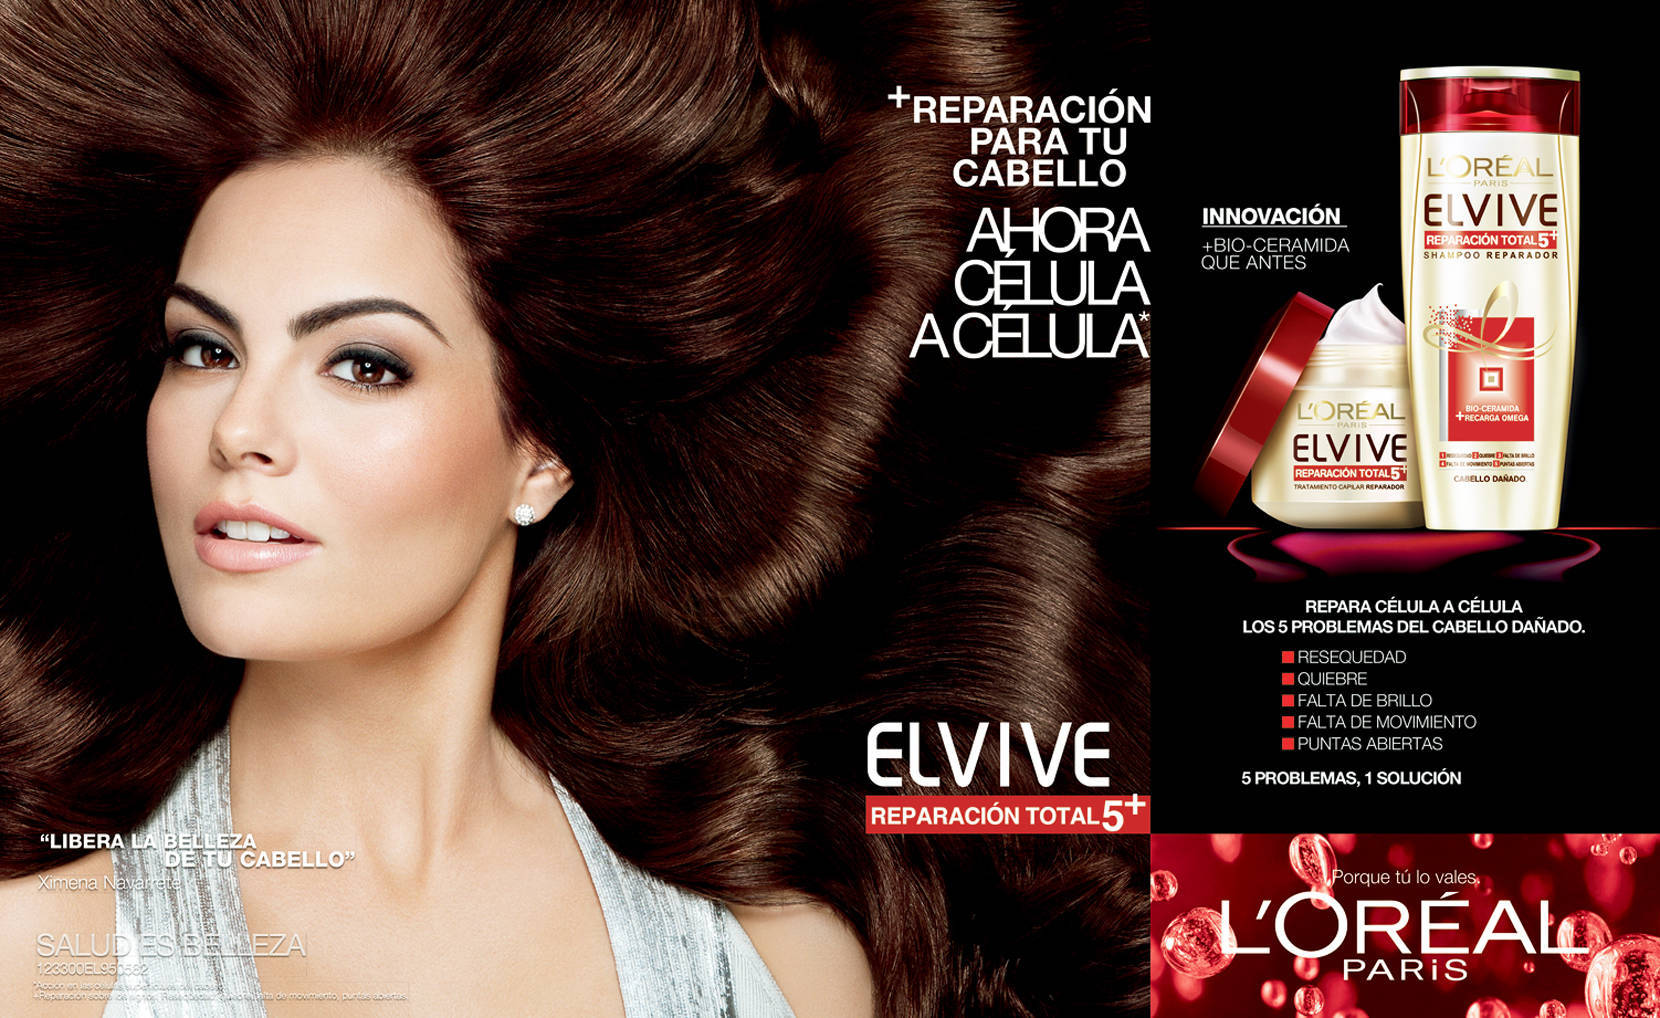 Alfa img - Showing > L'Oreal Skin Ads Freida Pinto Lipstick Color